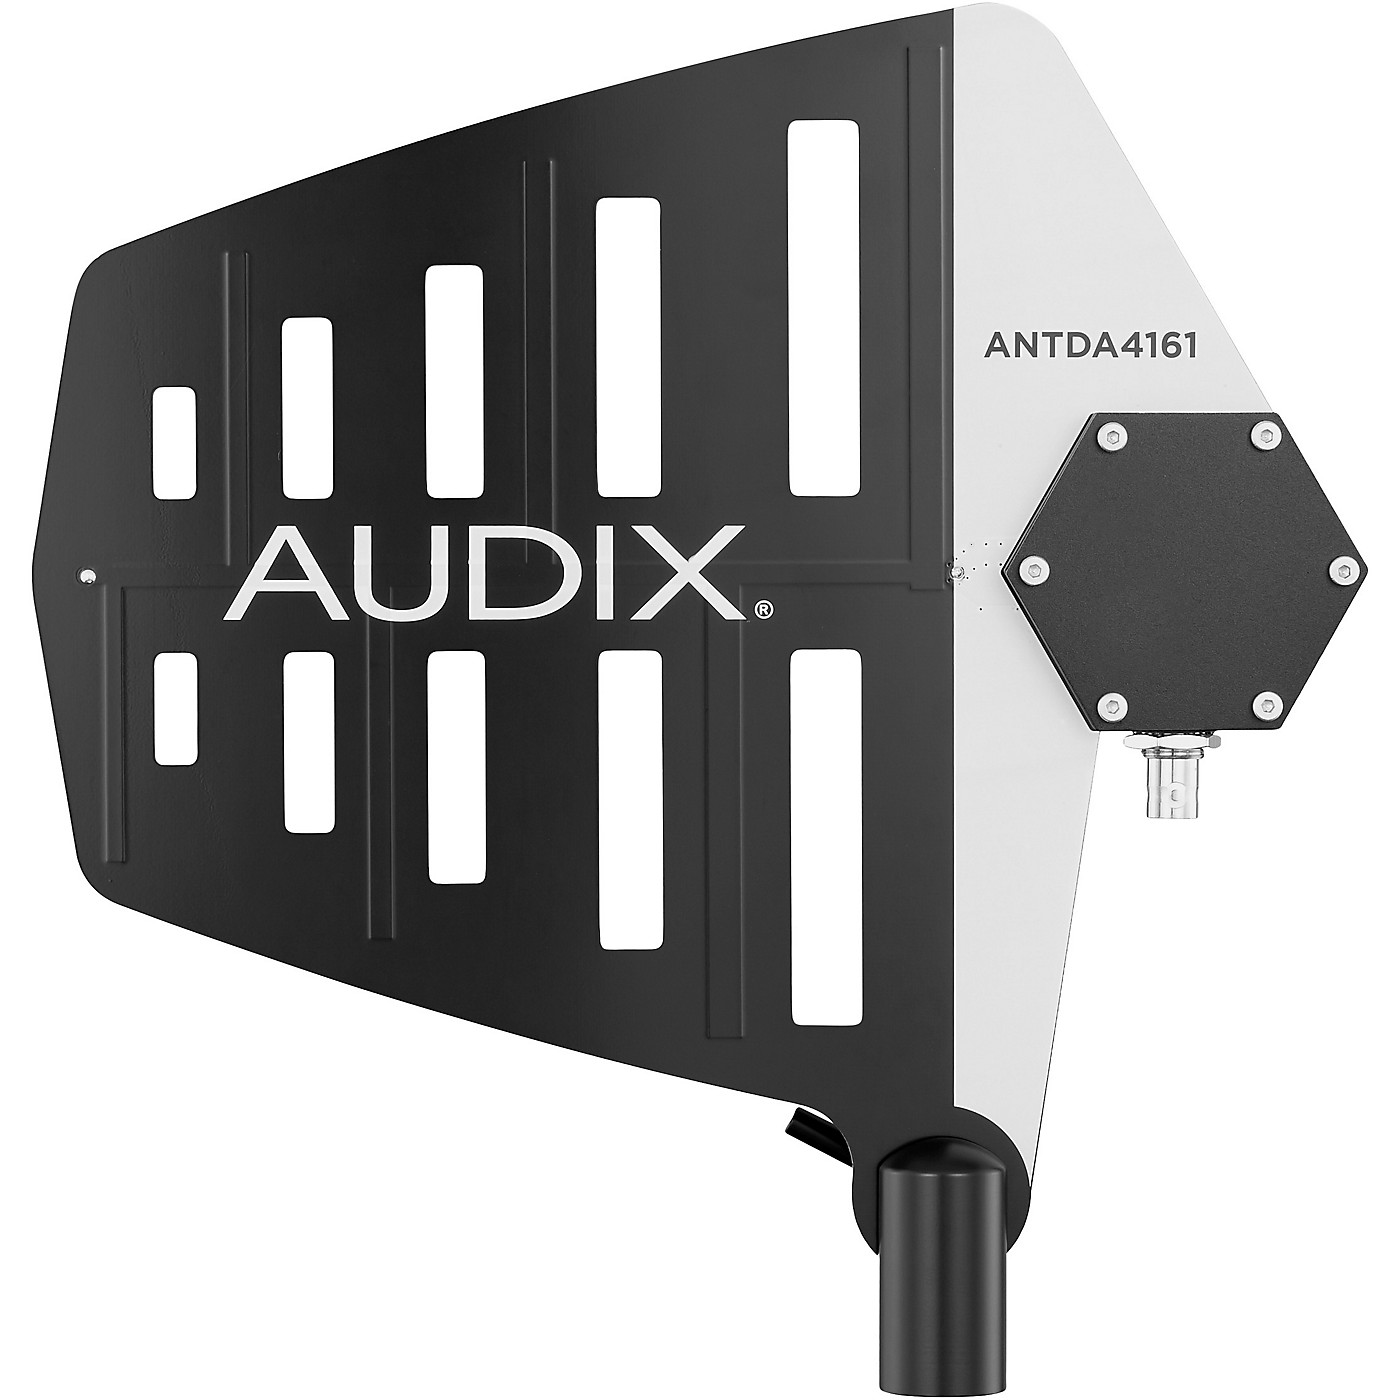 Audix ANTDA4161 Wireless Accessory - Wide Band Active Directional Antennas thumbnail